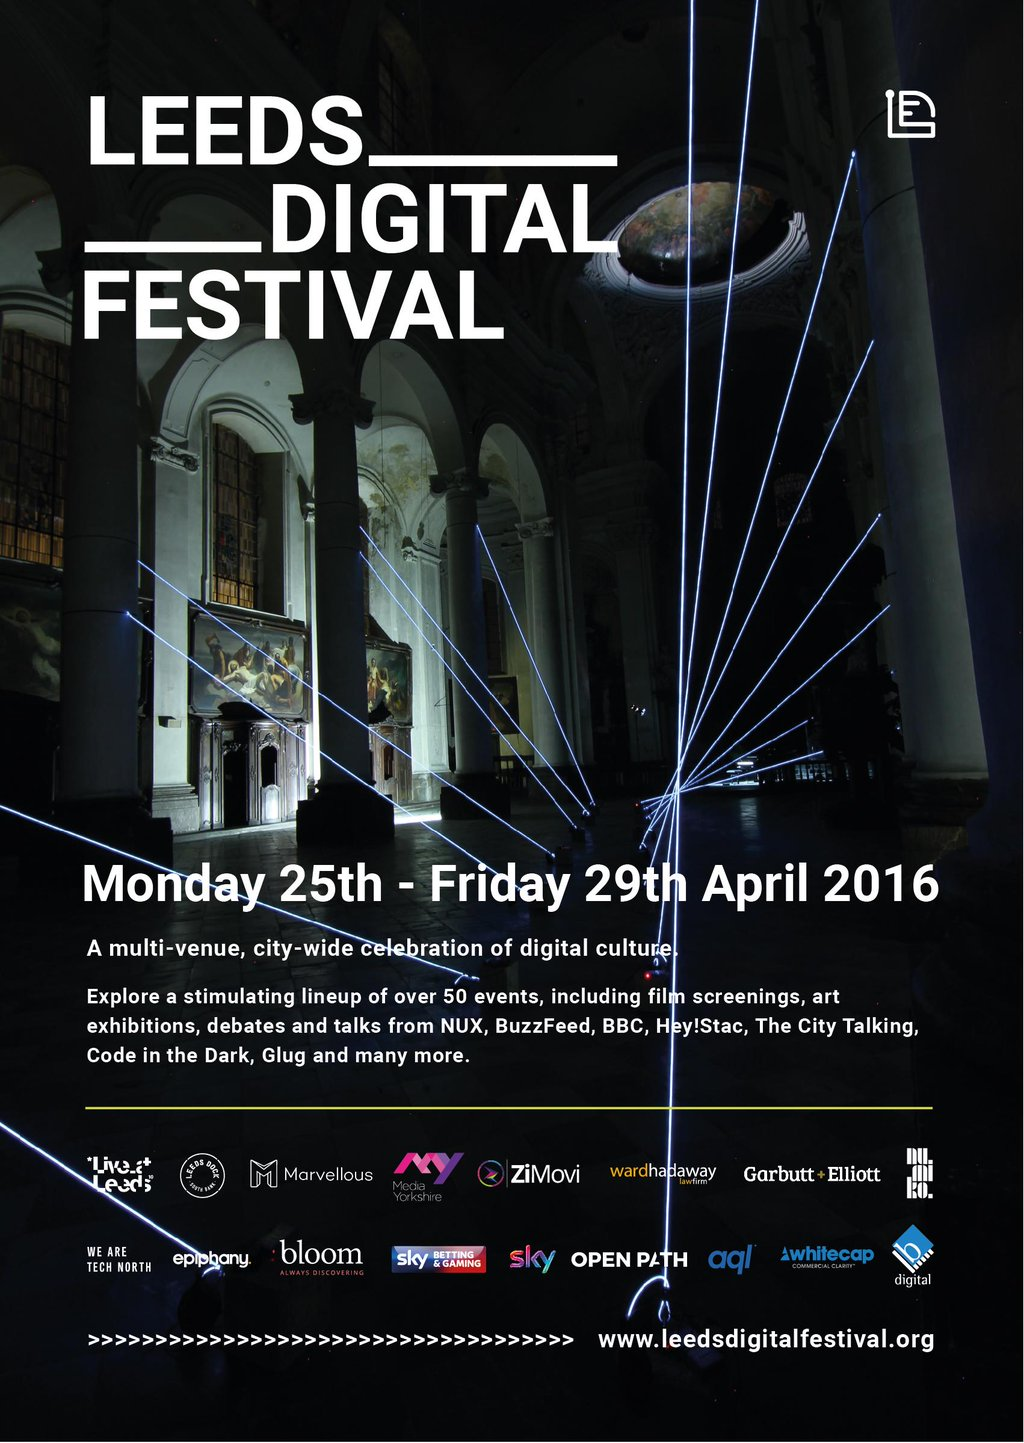 Leeds Digital Festival | Marvellous Digital Agency Leeds